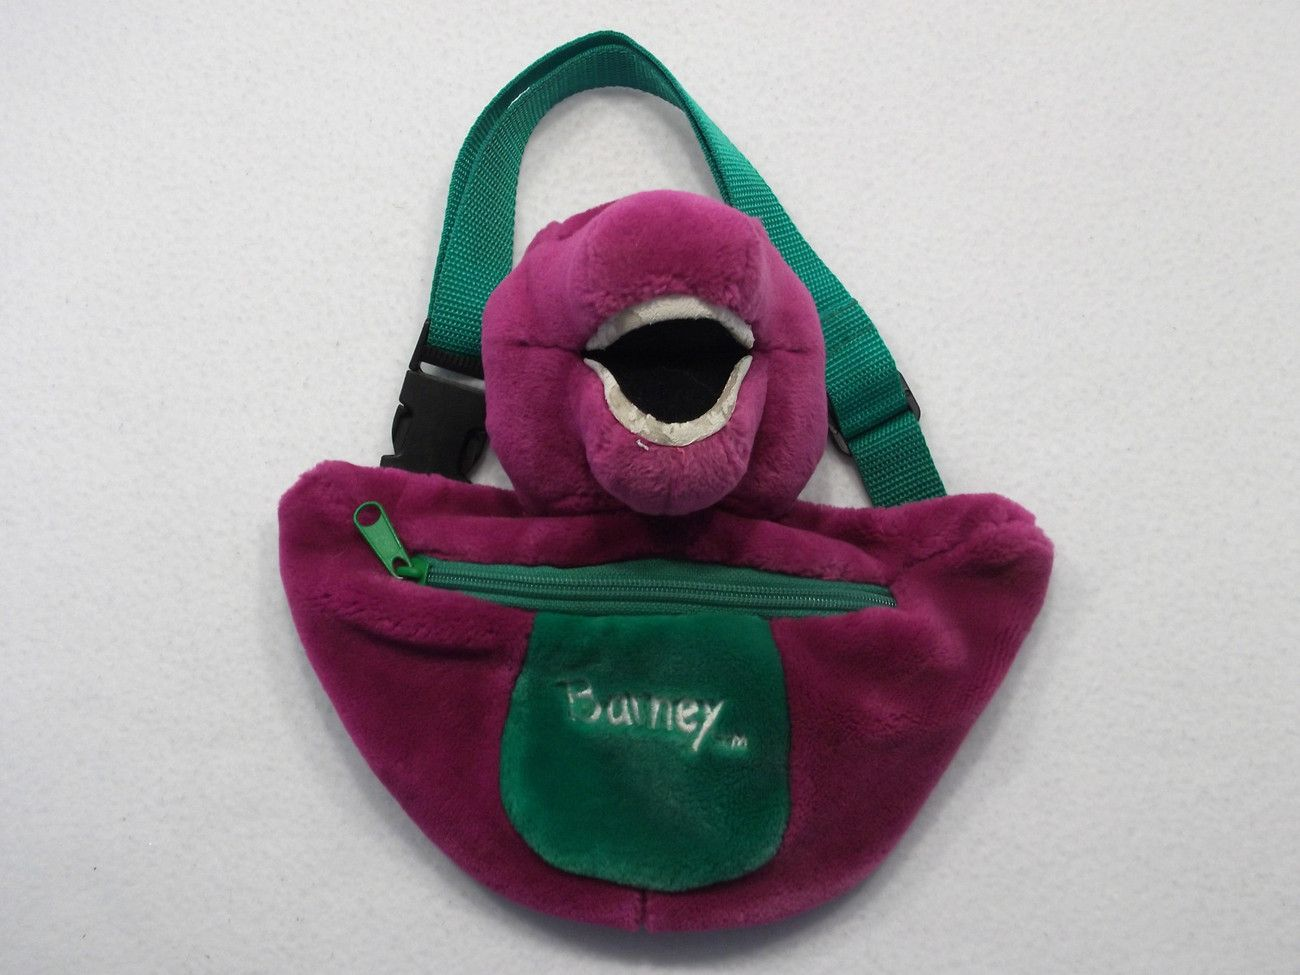 barney the purple dinosaur plush child pack barney